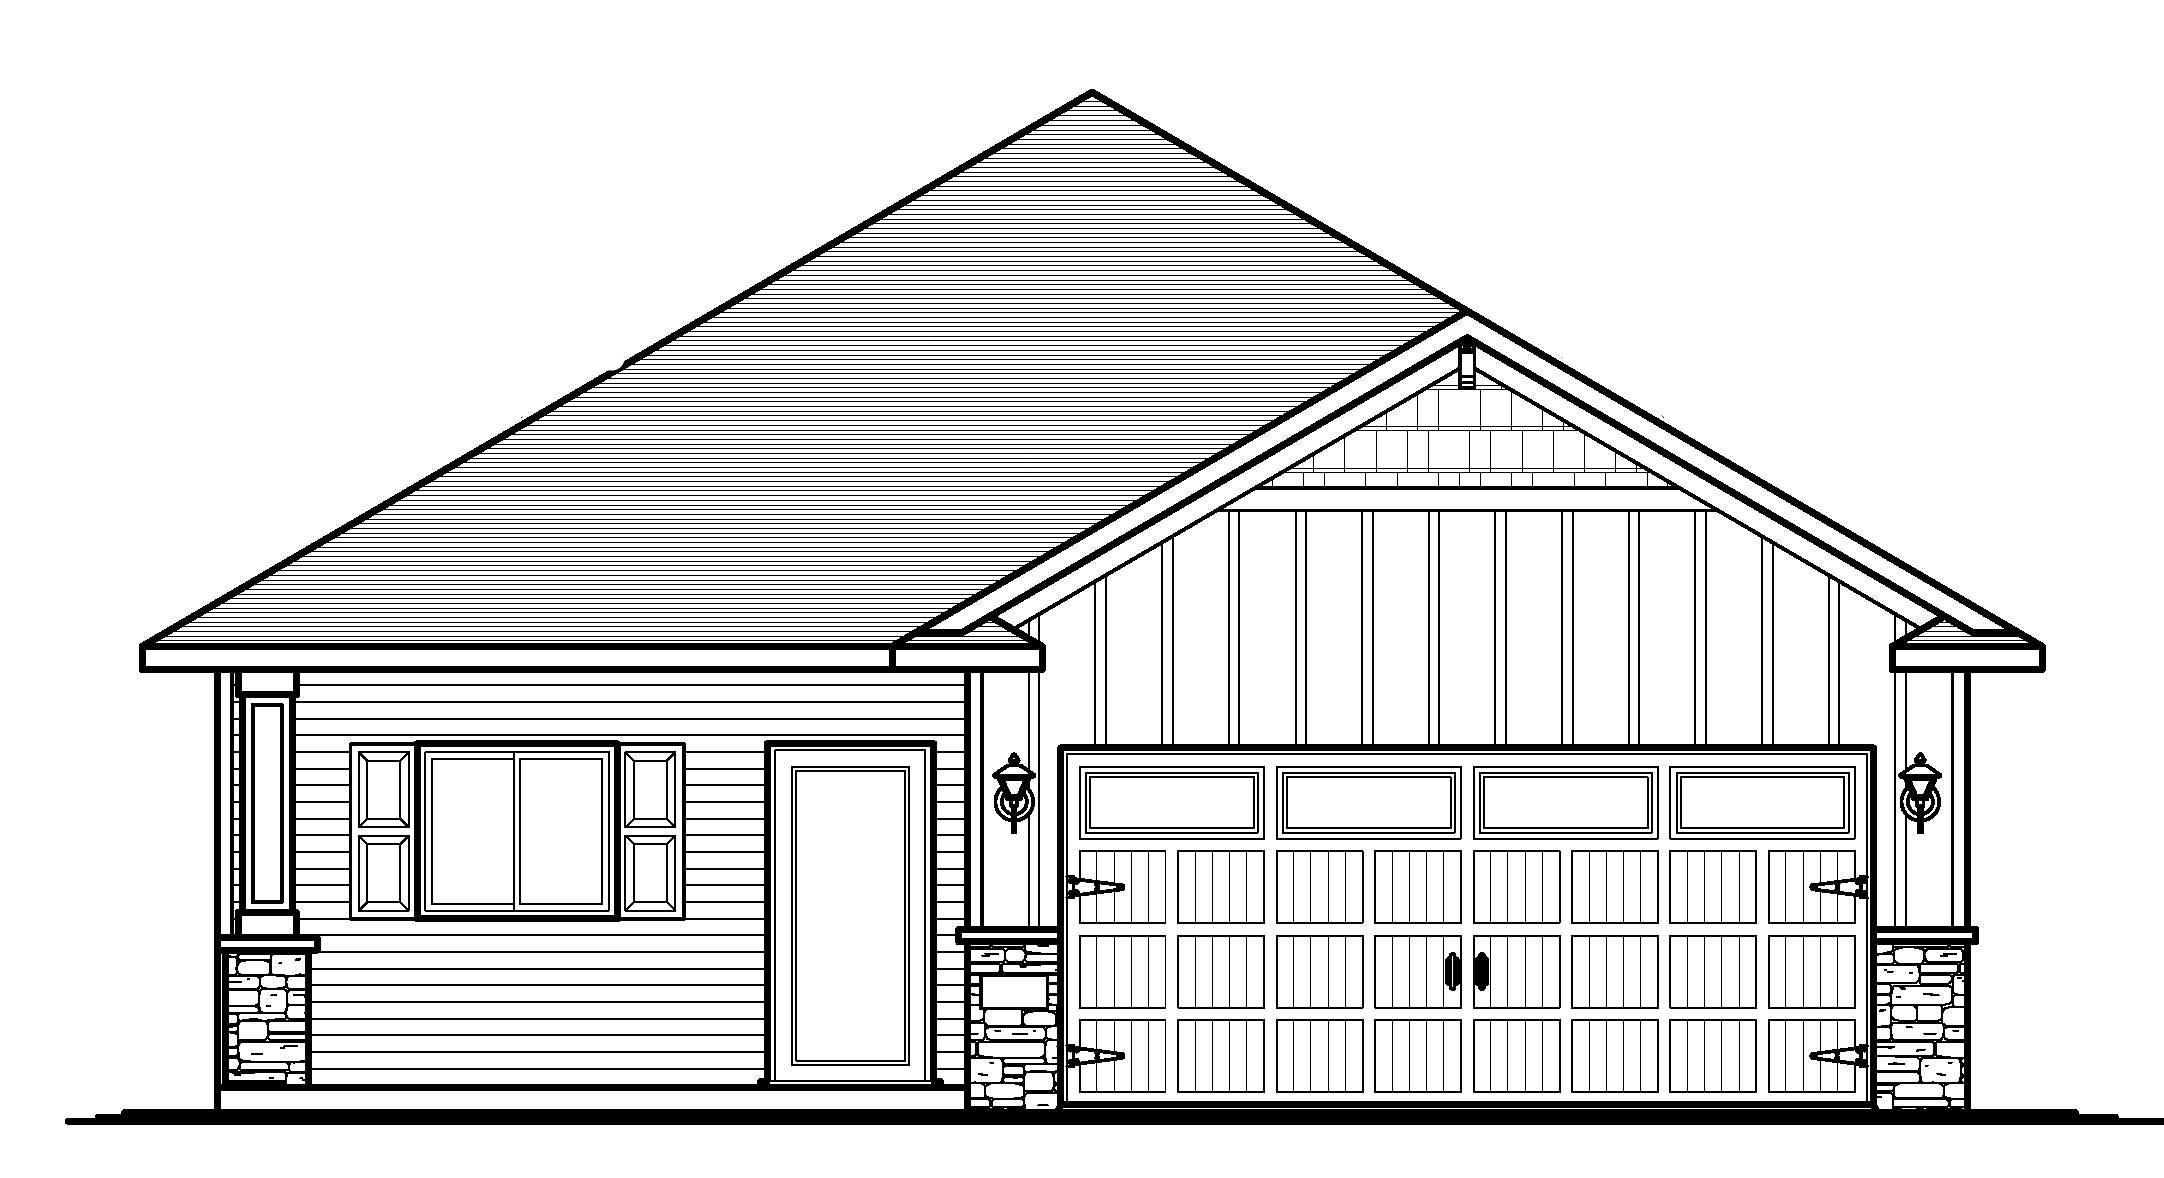 31688 McGuire TrailLindstrom, MN - The Evaline2BR/2BA-1412 FSFOne Story Detached TownhomeAvailable for Purchase